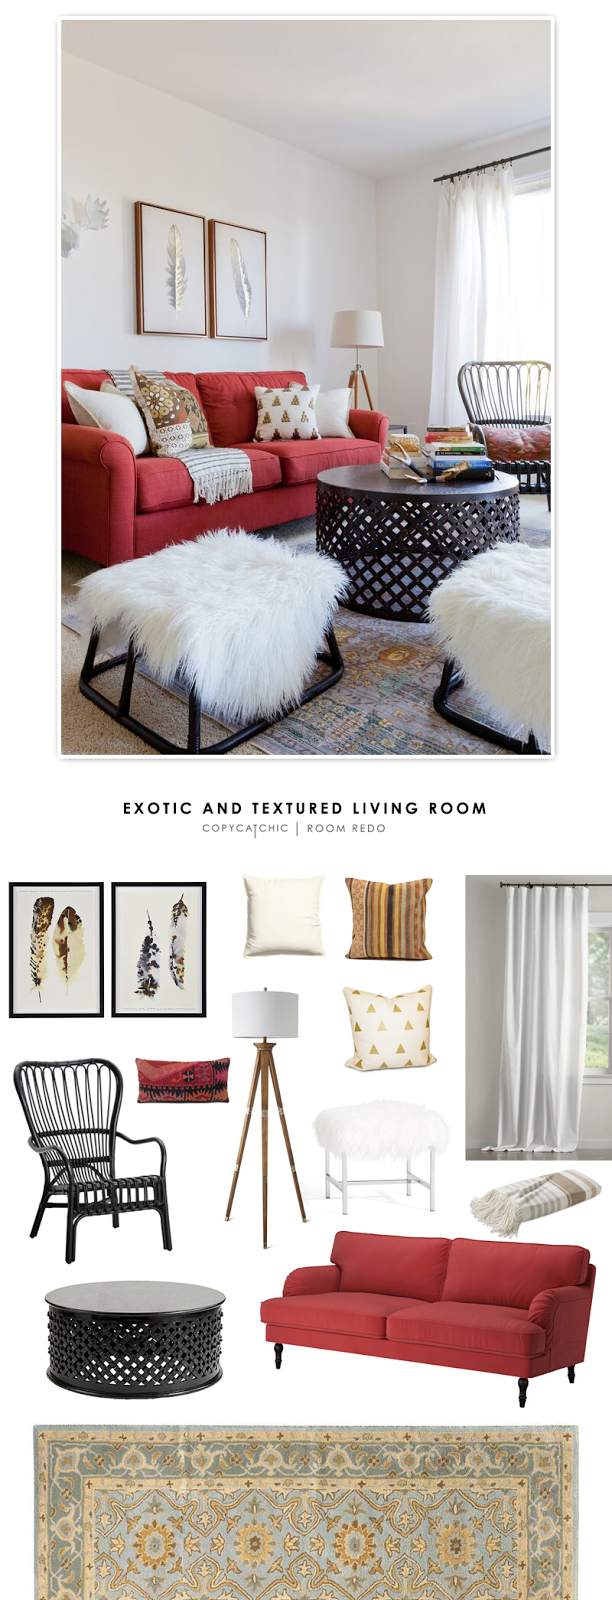 Exotic Living Room Ideas: Exotic & Textured Living Room